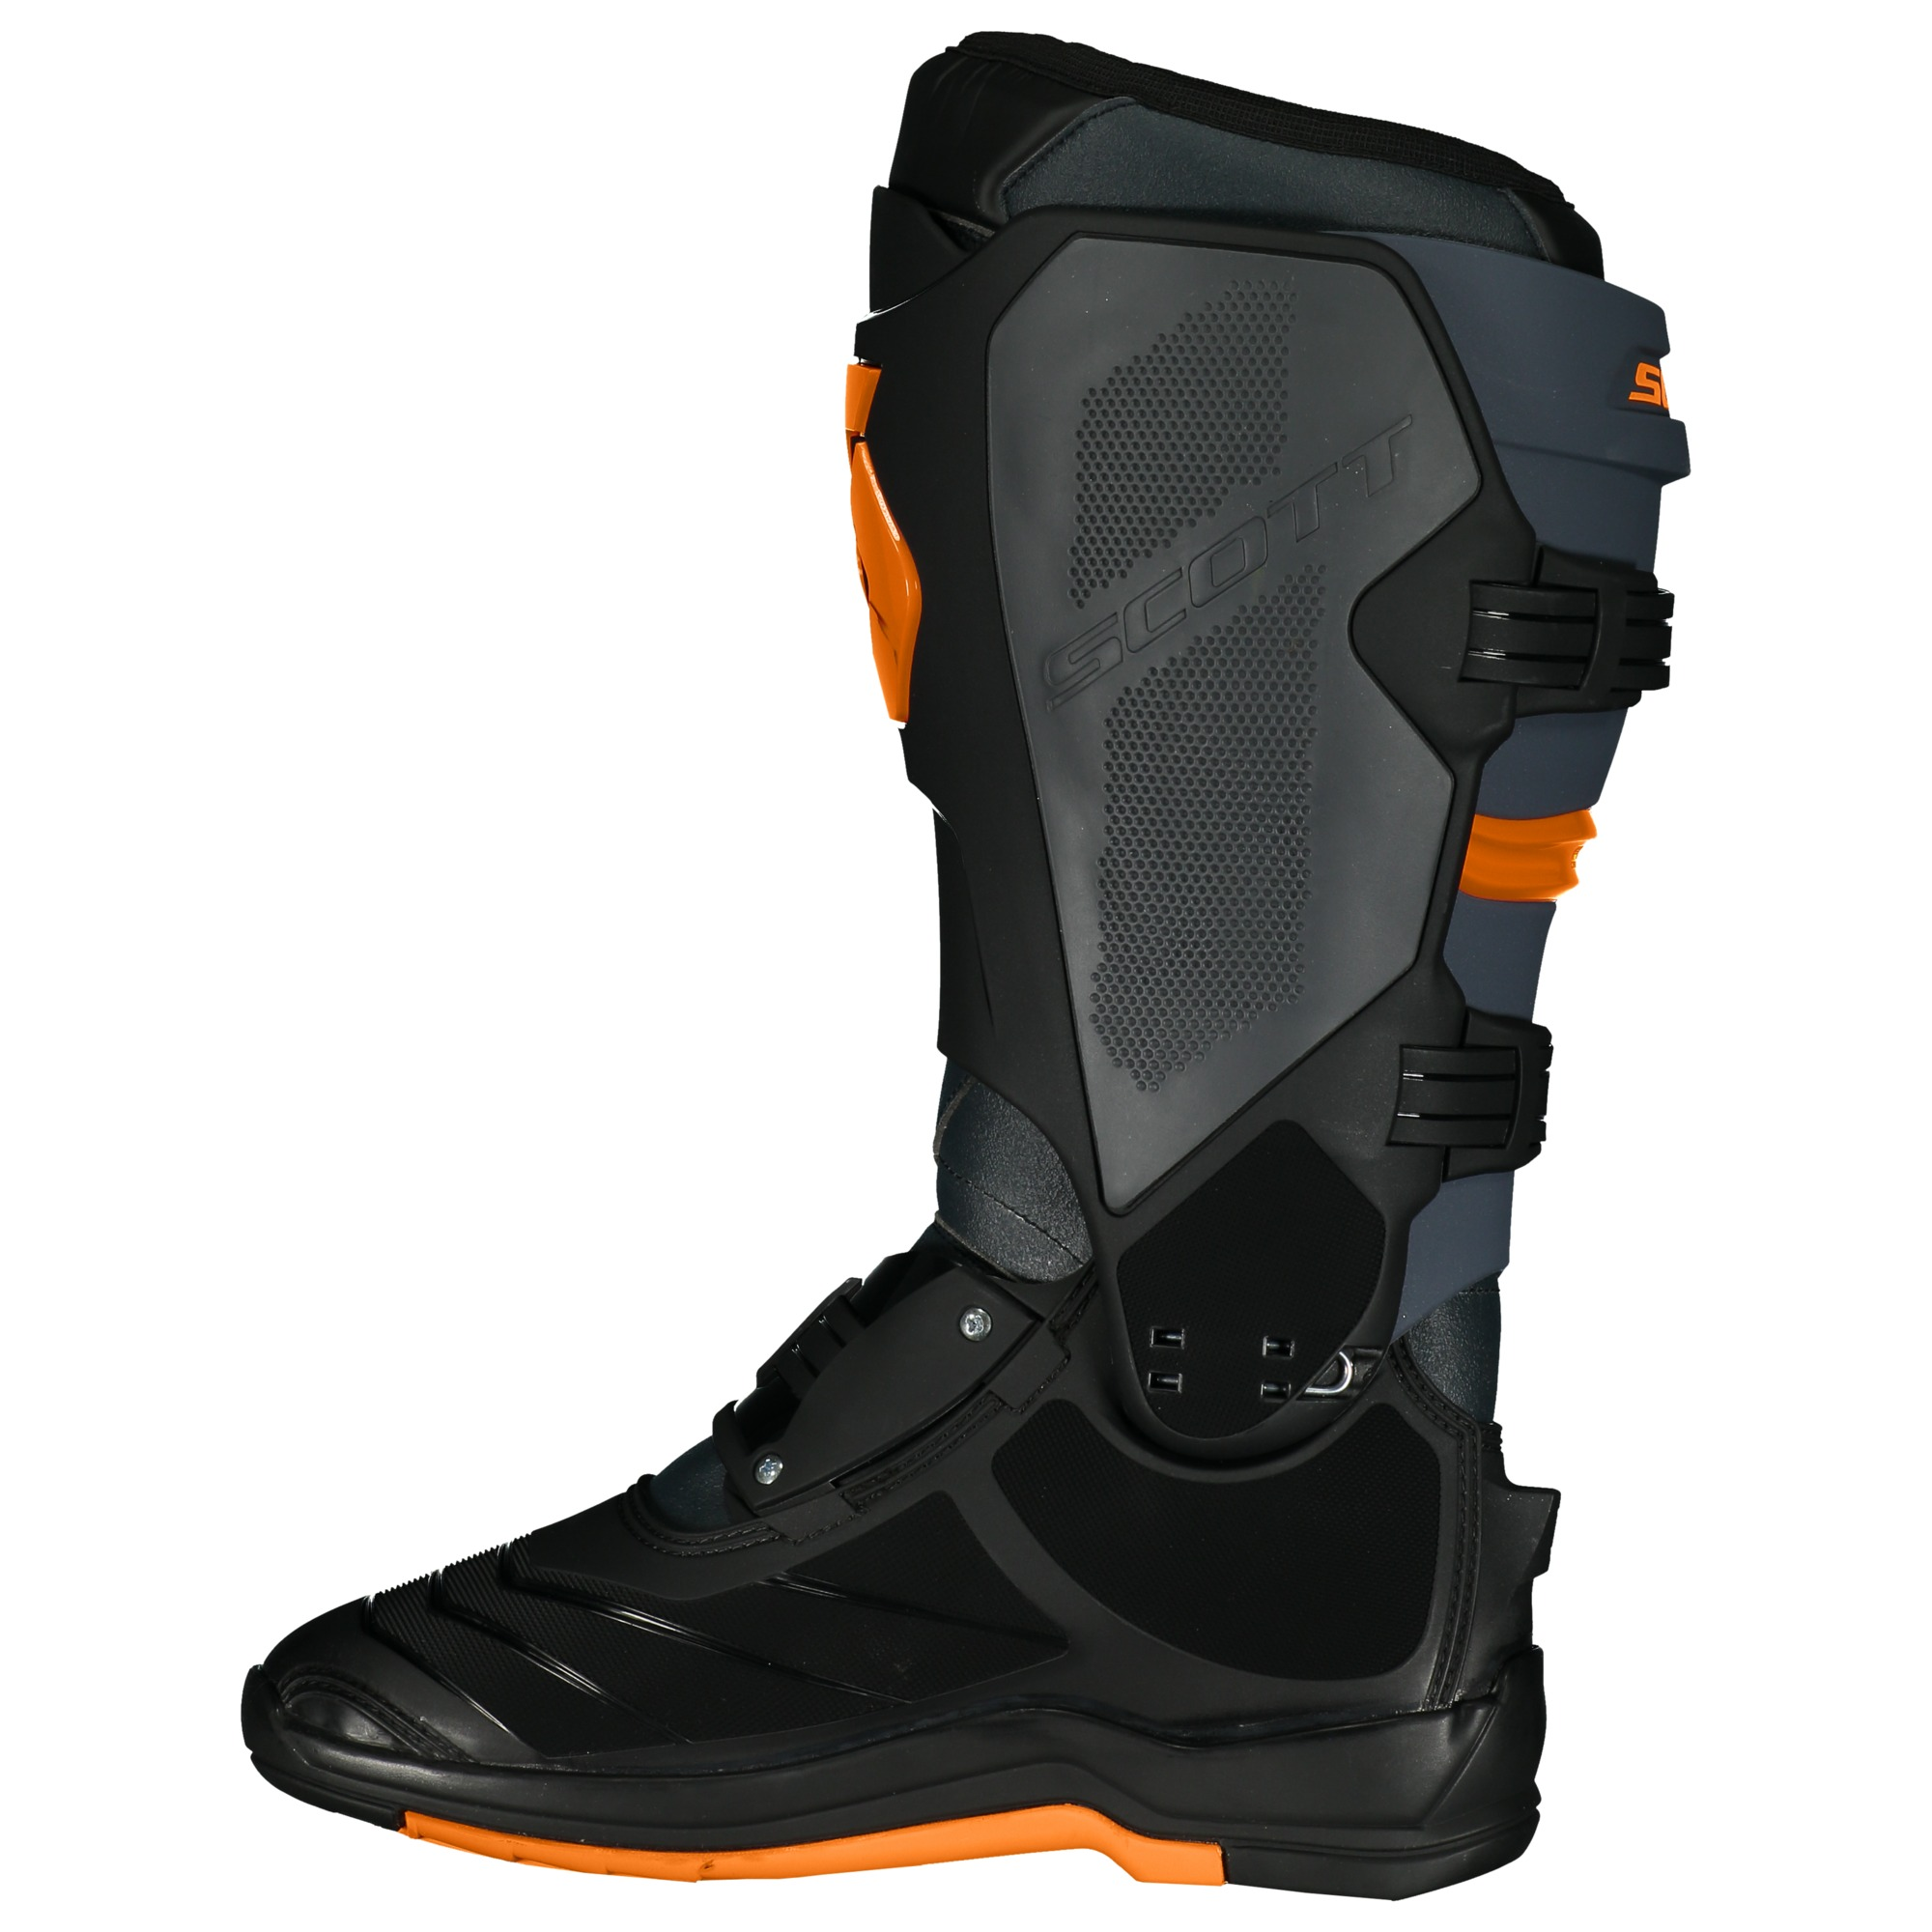 Botte SCOTT MX 550